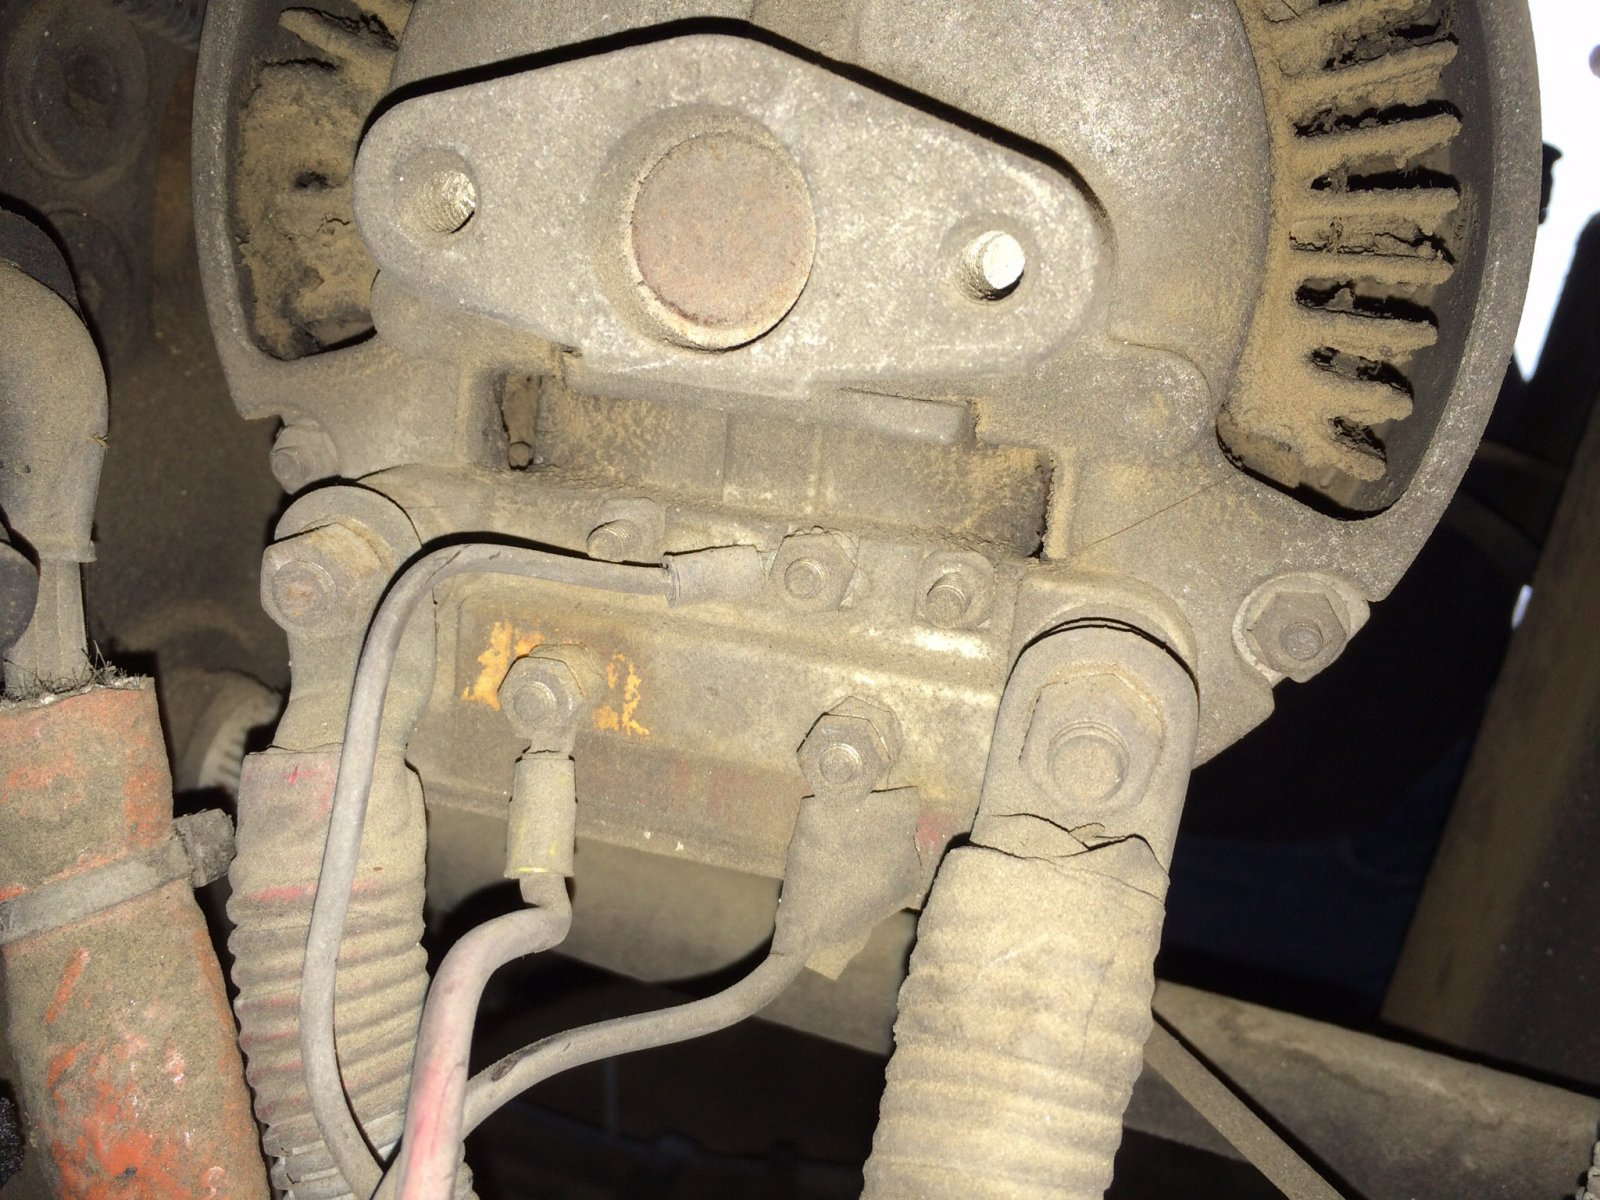 99 Windsor Alternator Wiring Diagram Irv2 Forums Duvac Click Image For Larger Version Name Views 177 Size 3721